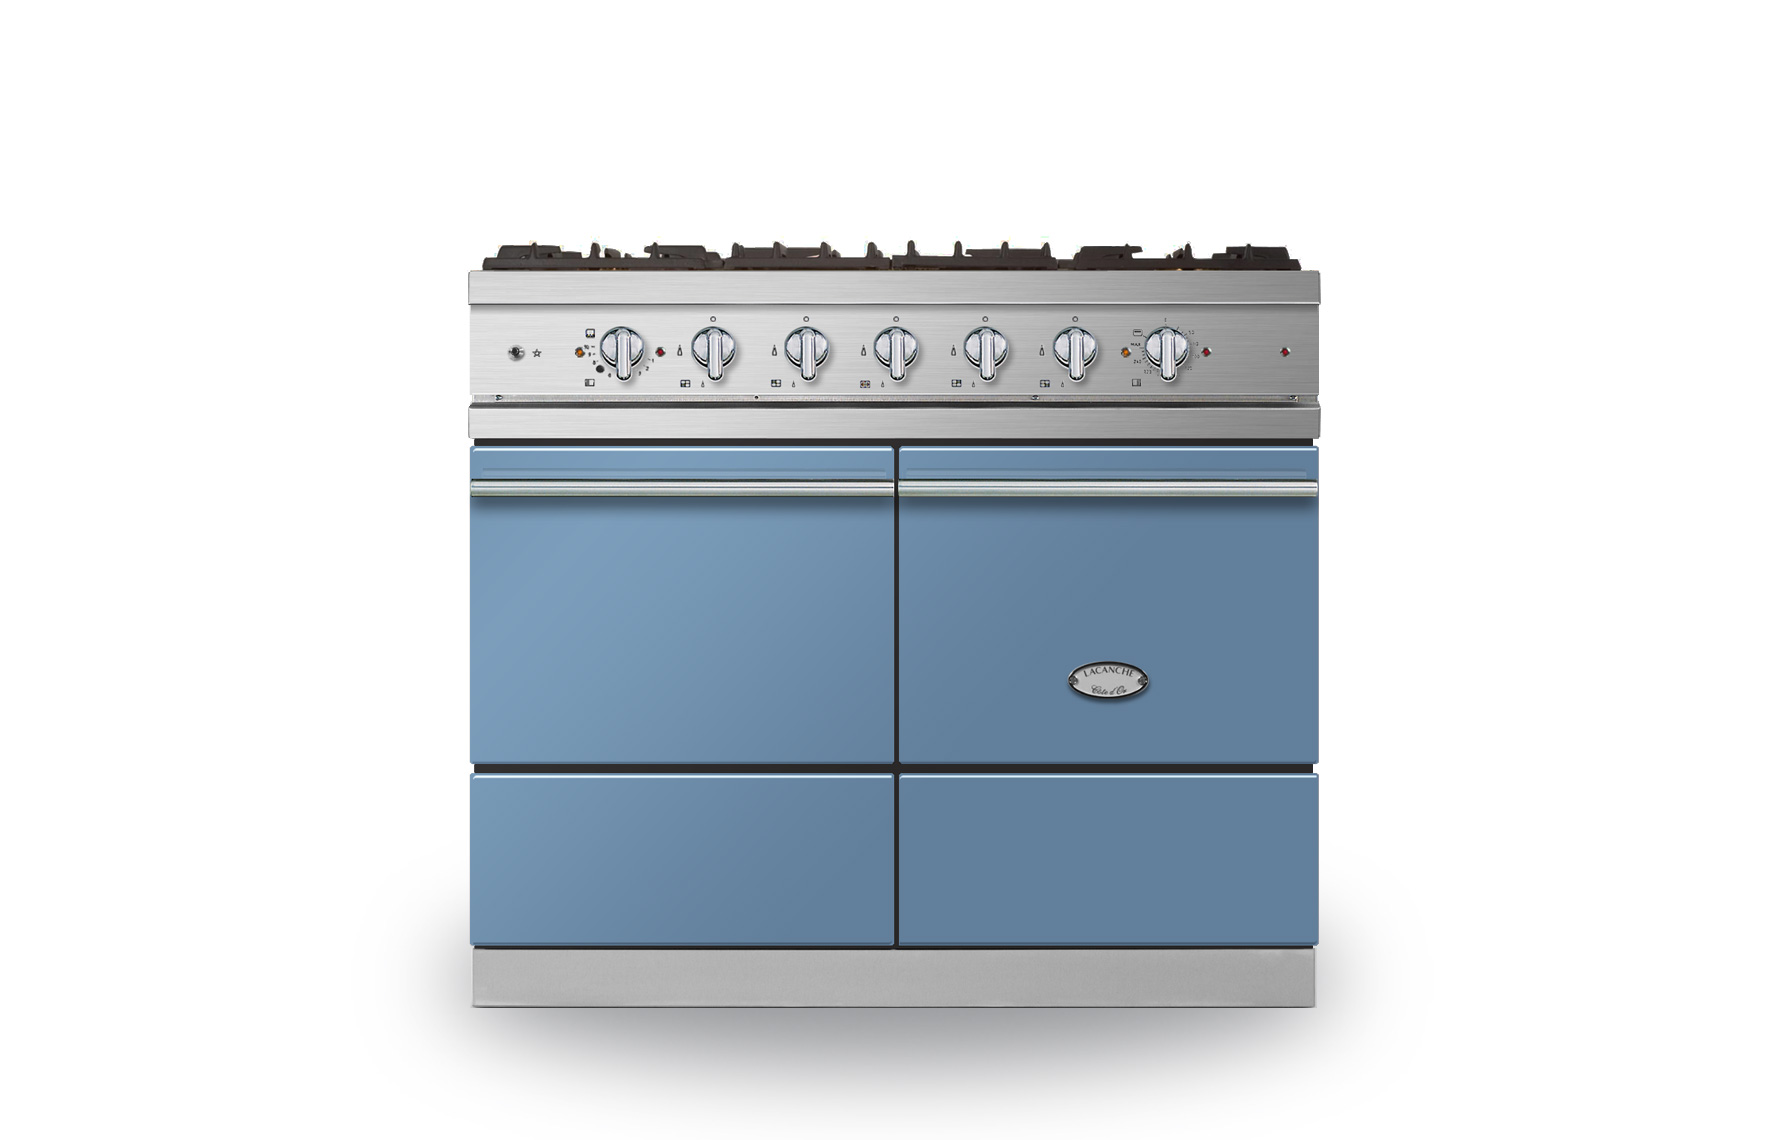 lacanche cluny modern 100 range cookers. Black Bedroom Furniture Sets. Home Design Ideas